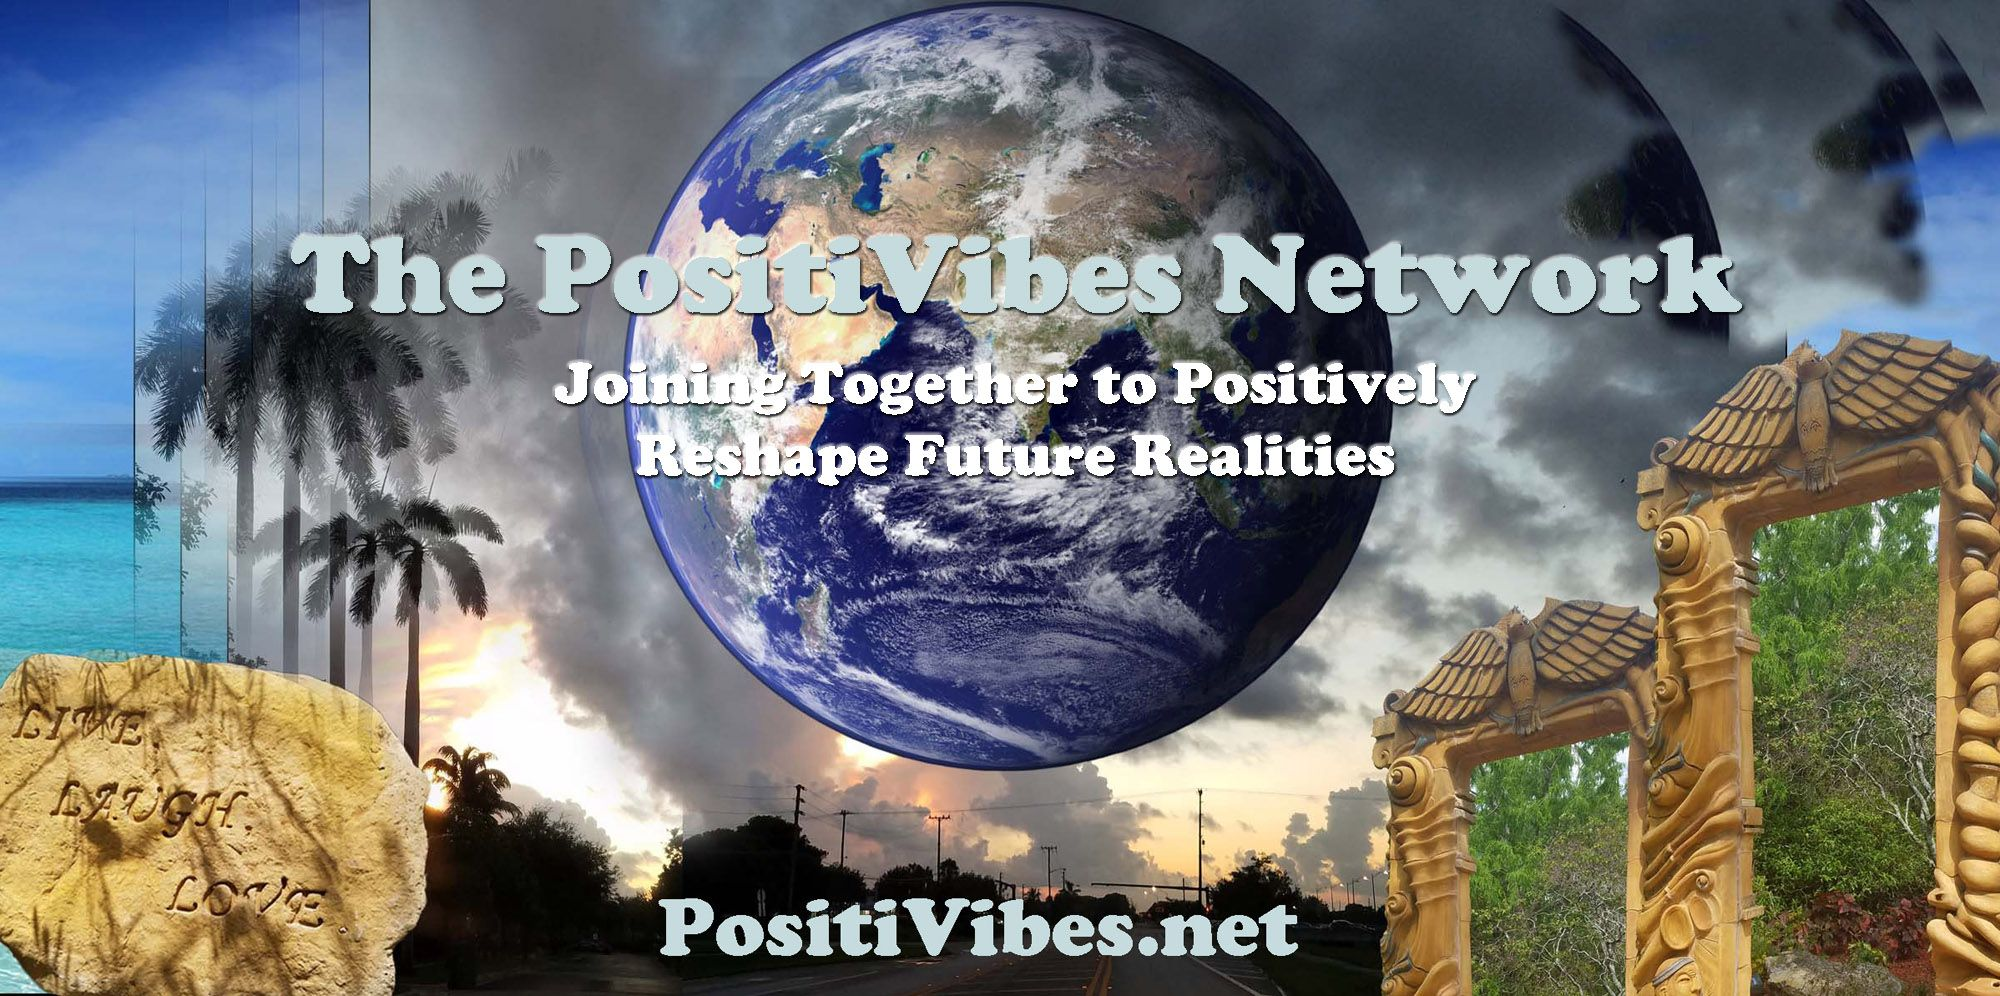 The PositiVibes Network, Inc.